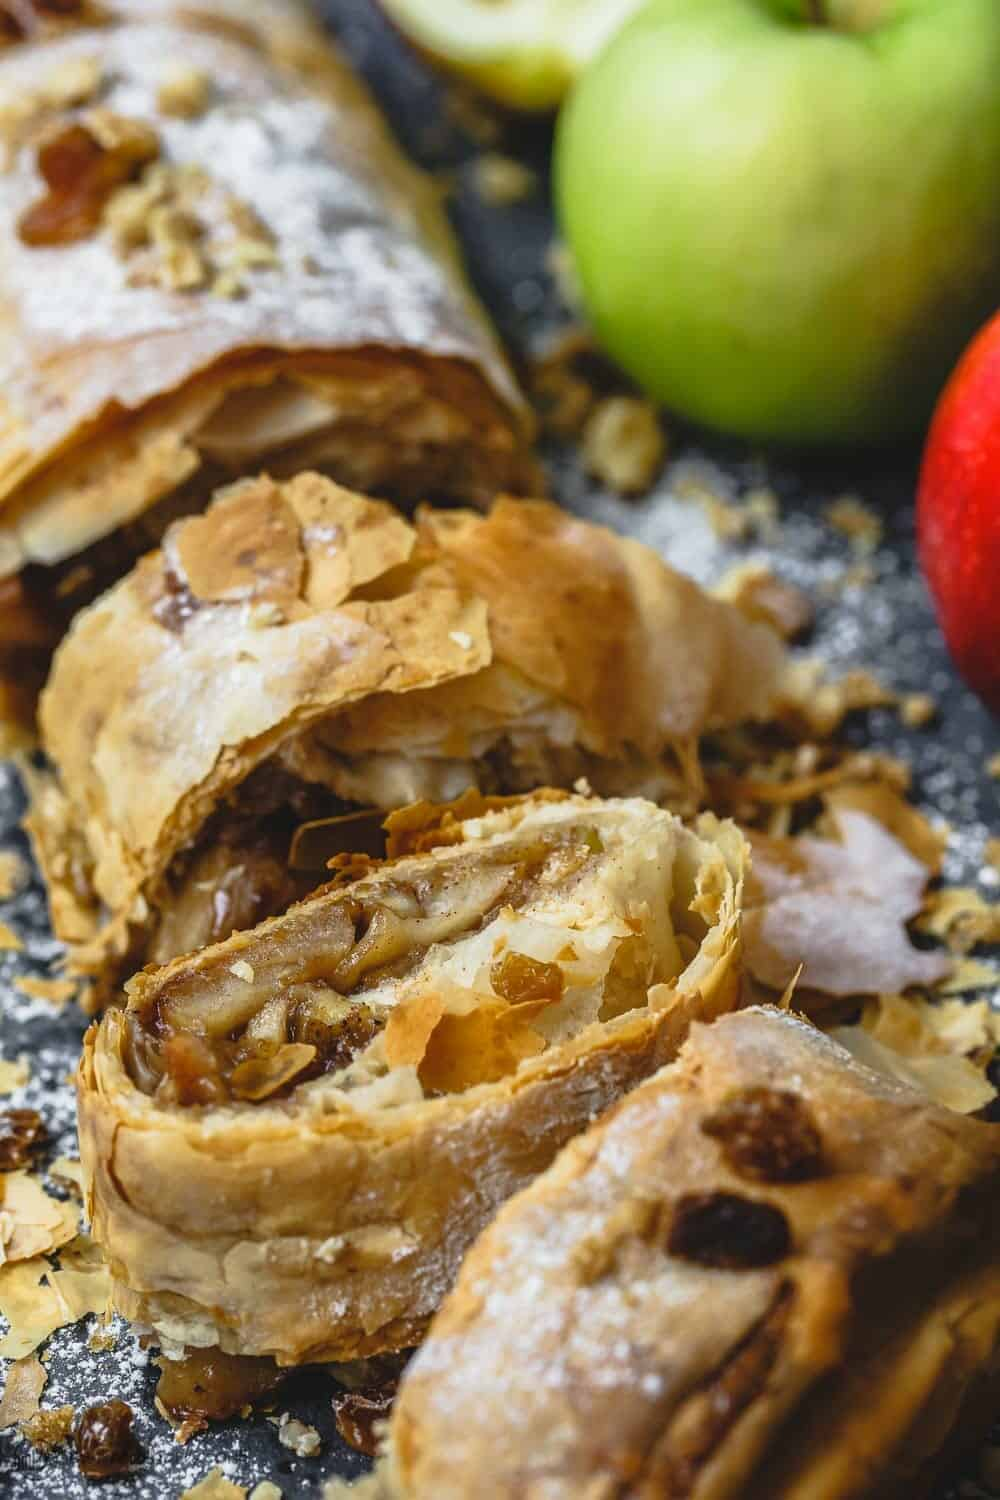 Apple Strudel with Phyllo Dough. Can be sliced to serve 10 people